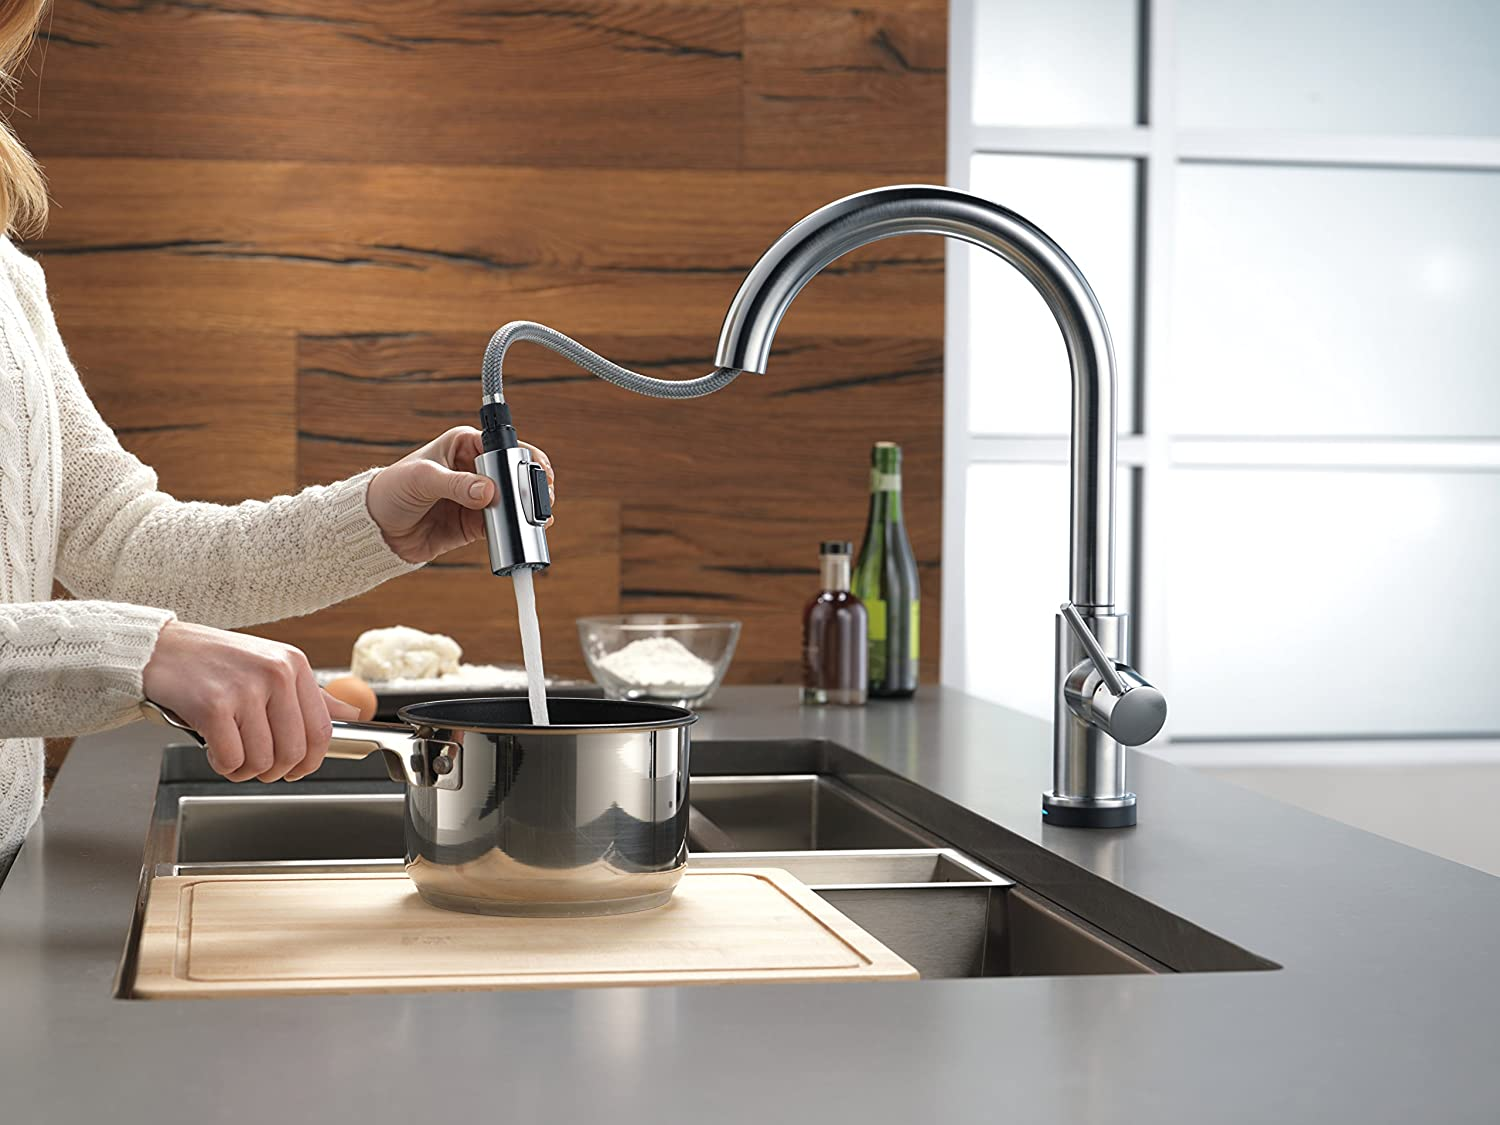 BK delta trinsic kitchen faucet Delta Faucet T AR DST Trinsic Single Handle Pull Down Kitchen Faucet with Touch2O Technology and Magnetic Docking Arctic Stainless Touch On Kitchen